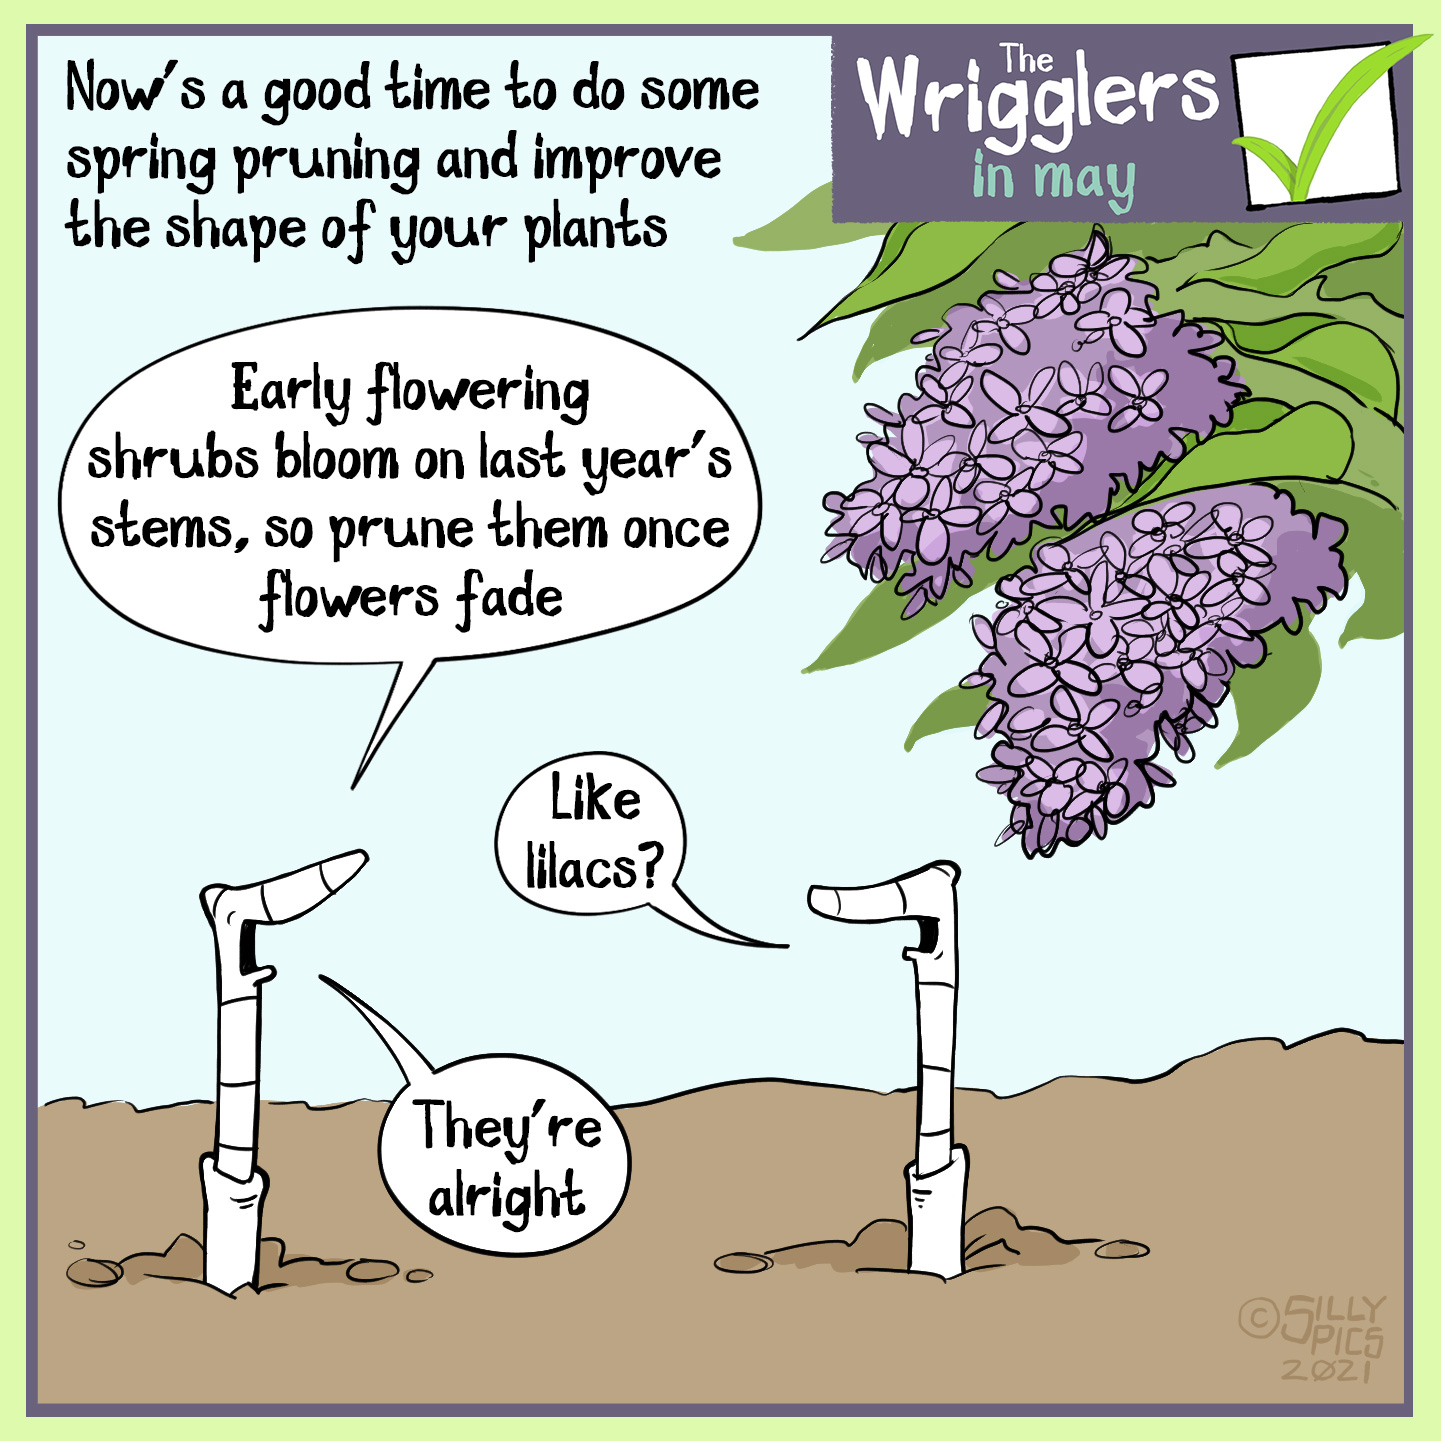 """The headline says, """"Now's a good time to dos one spring pruning and improve the shape of your plants."""" The image is of two works under a lilac branch. One of the worms says, """" Early flowering shrubs bloom on the last year's stems, so prune them once this season's flowers faded."""" The other worm says, """"Like lilacs?"""" The worm replies, """"They're alright."""""""